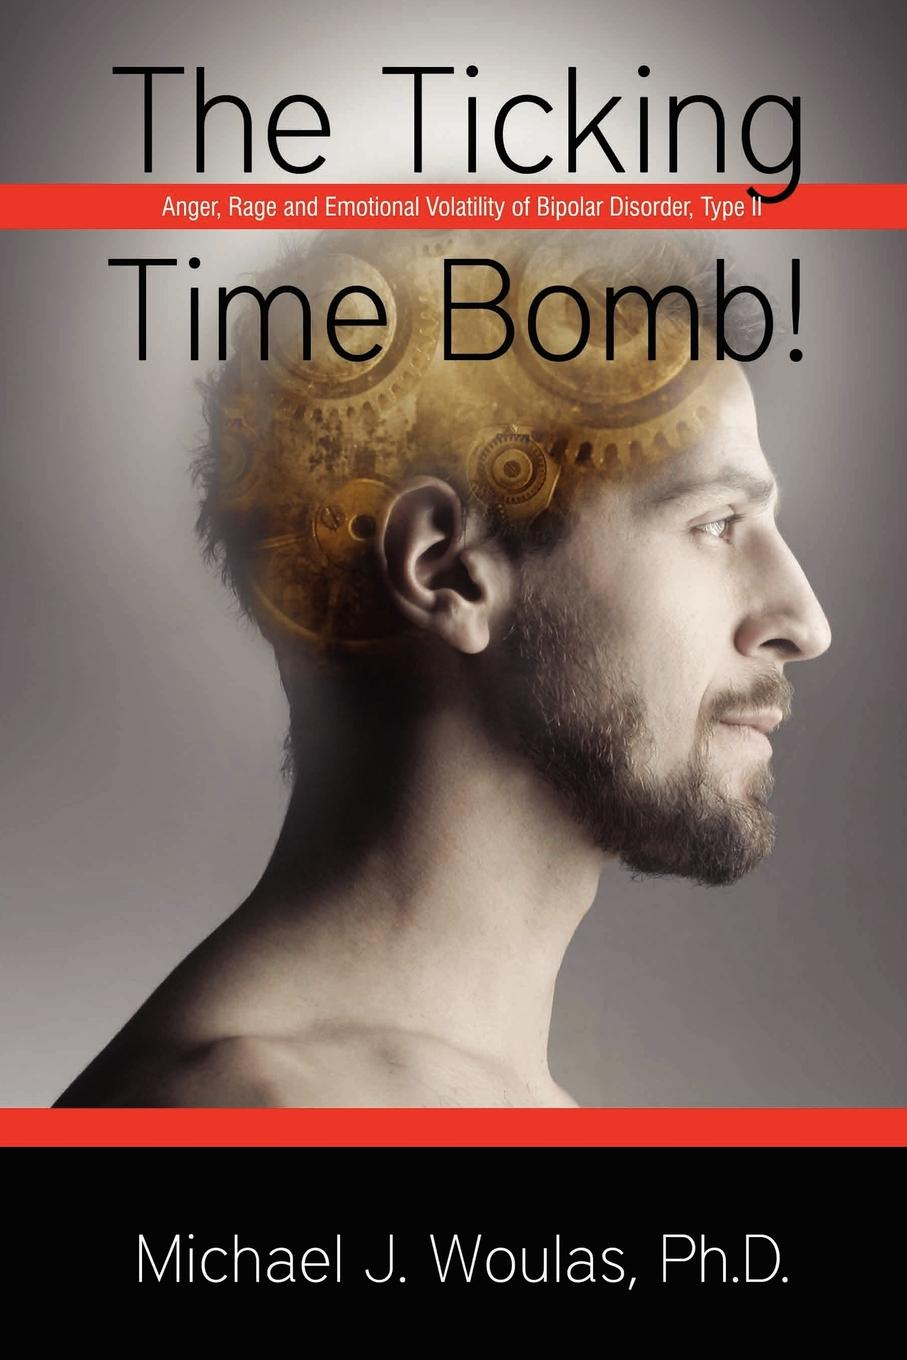 Ph. D. Michael J. Woulas The Ticking Time Bomb felix j palma the map of time and the turn of the screw